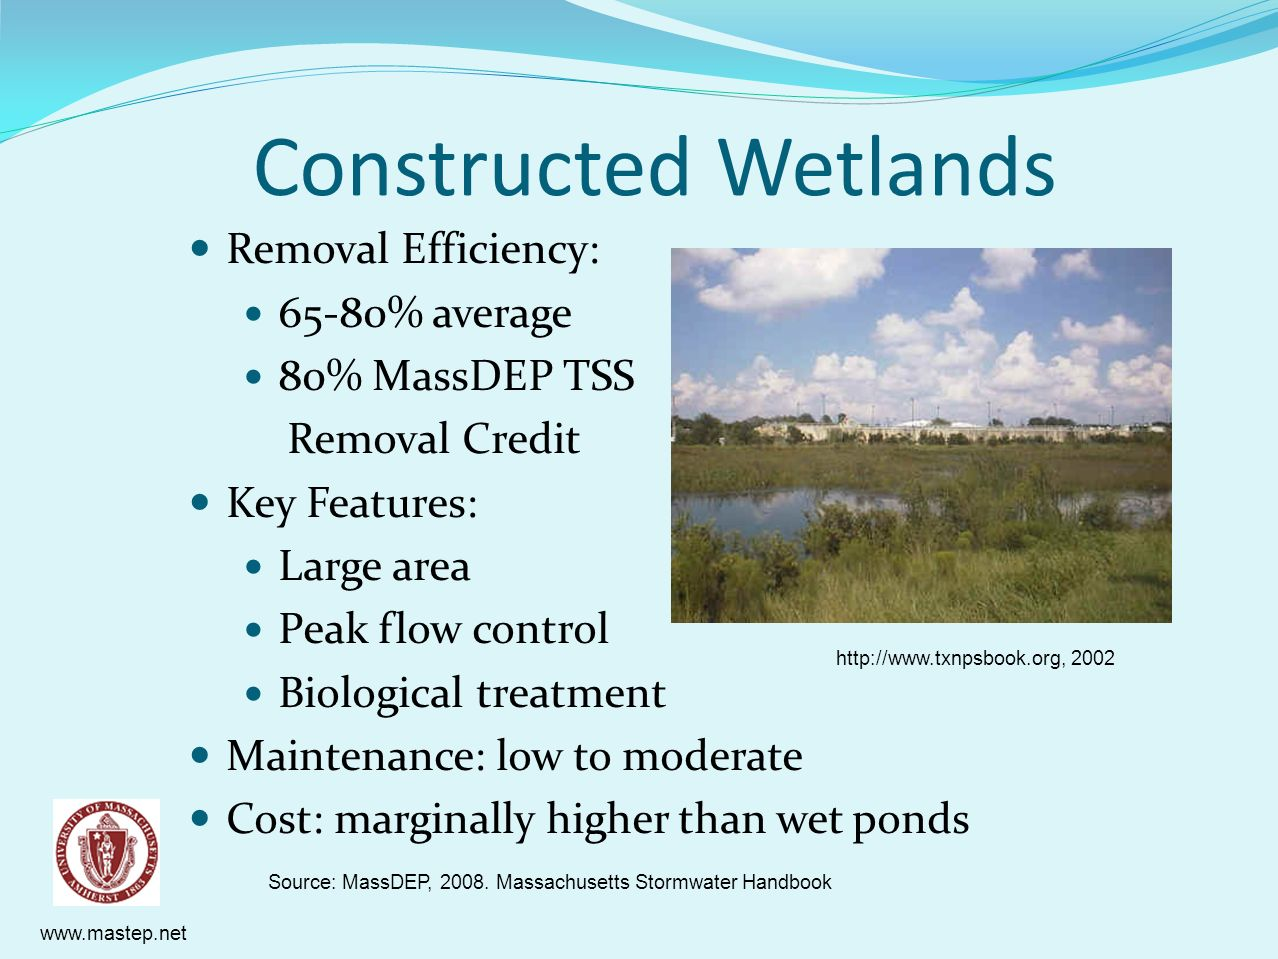 Constructed Wetlands Removal Efficiency: 65-80% average